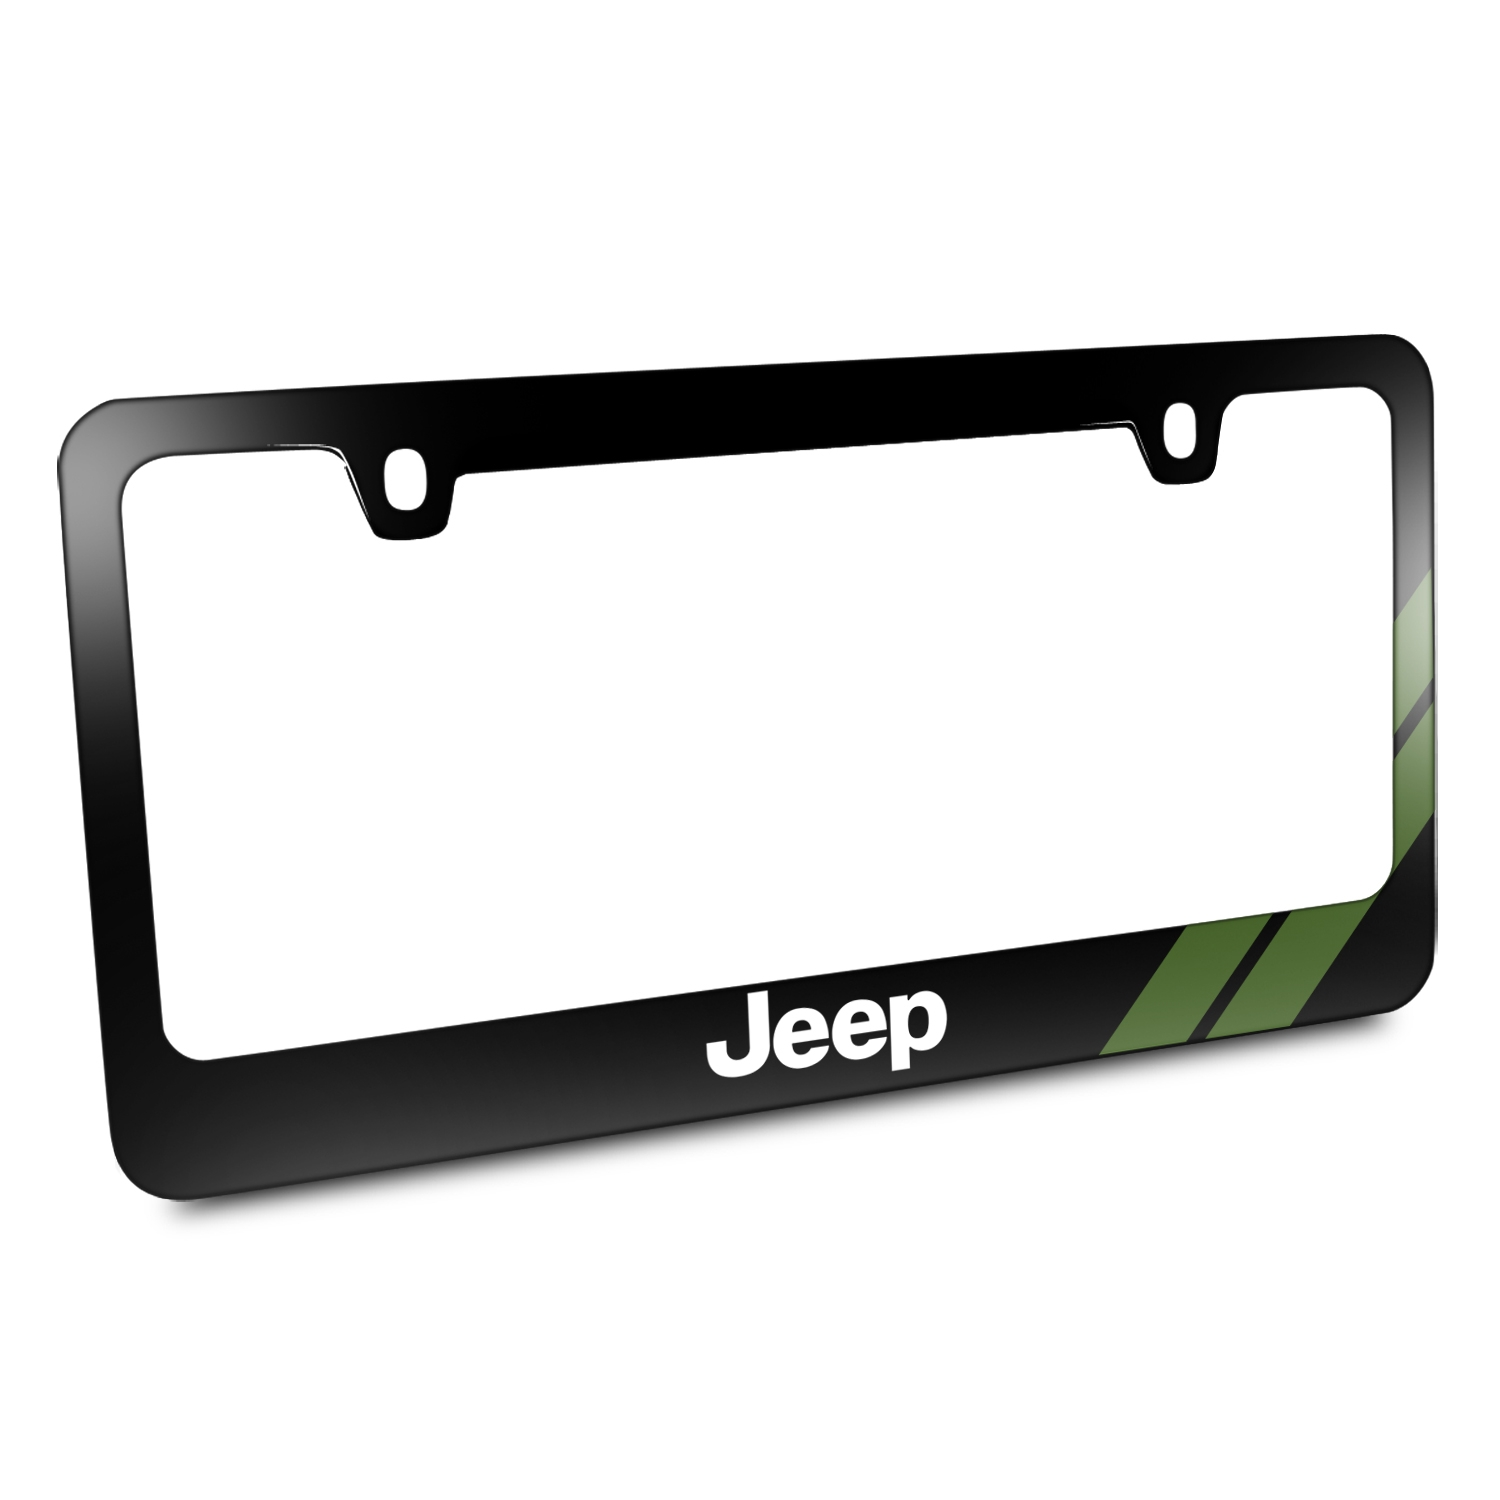 Jeep Green Stripe Black Metal License Plate Frame